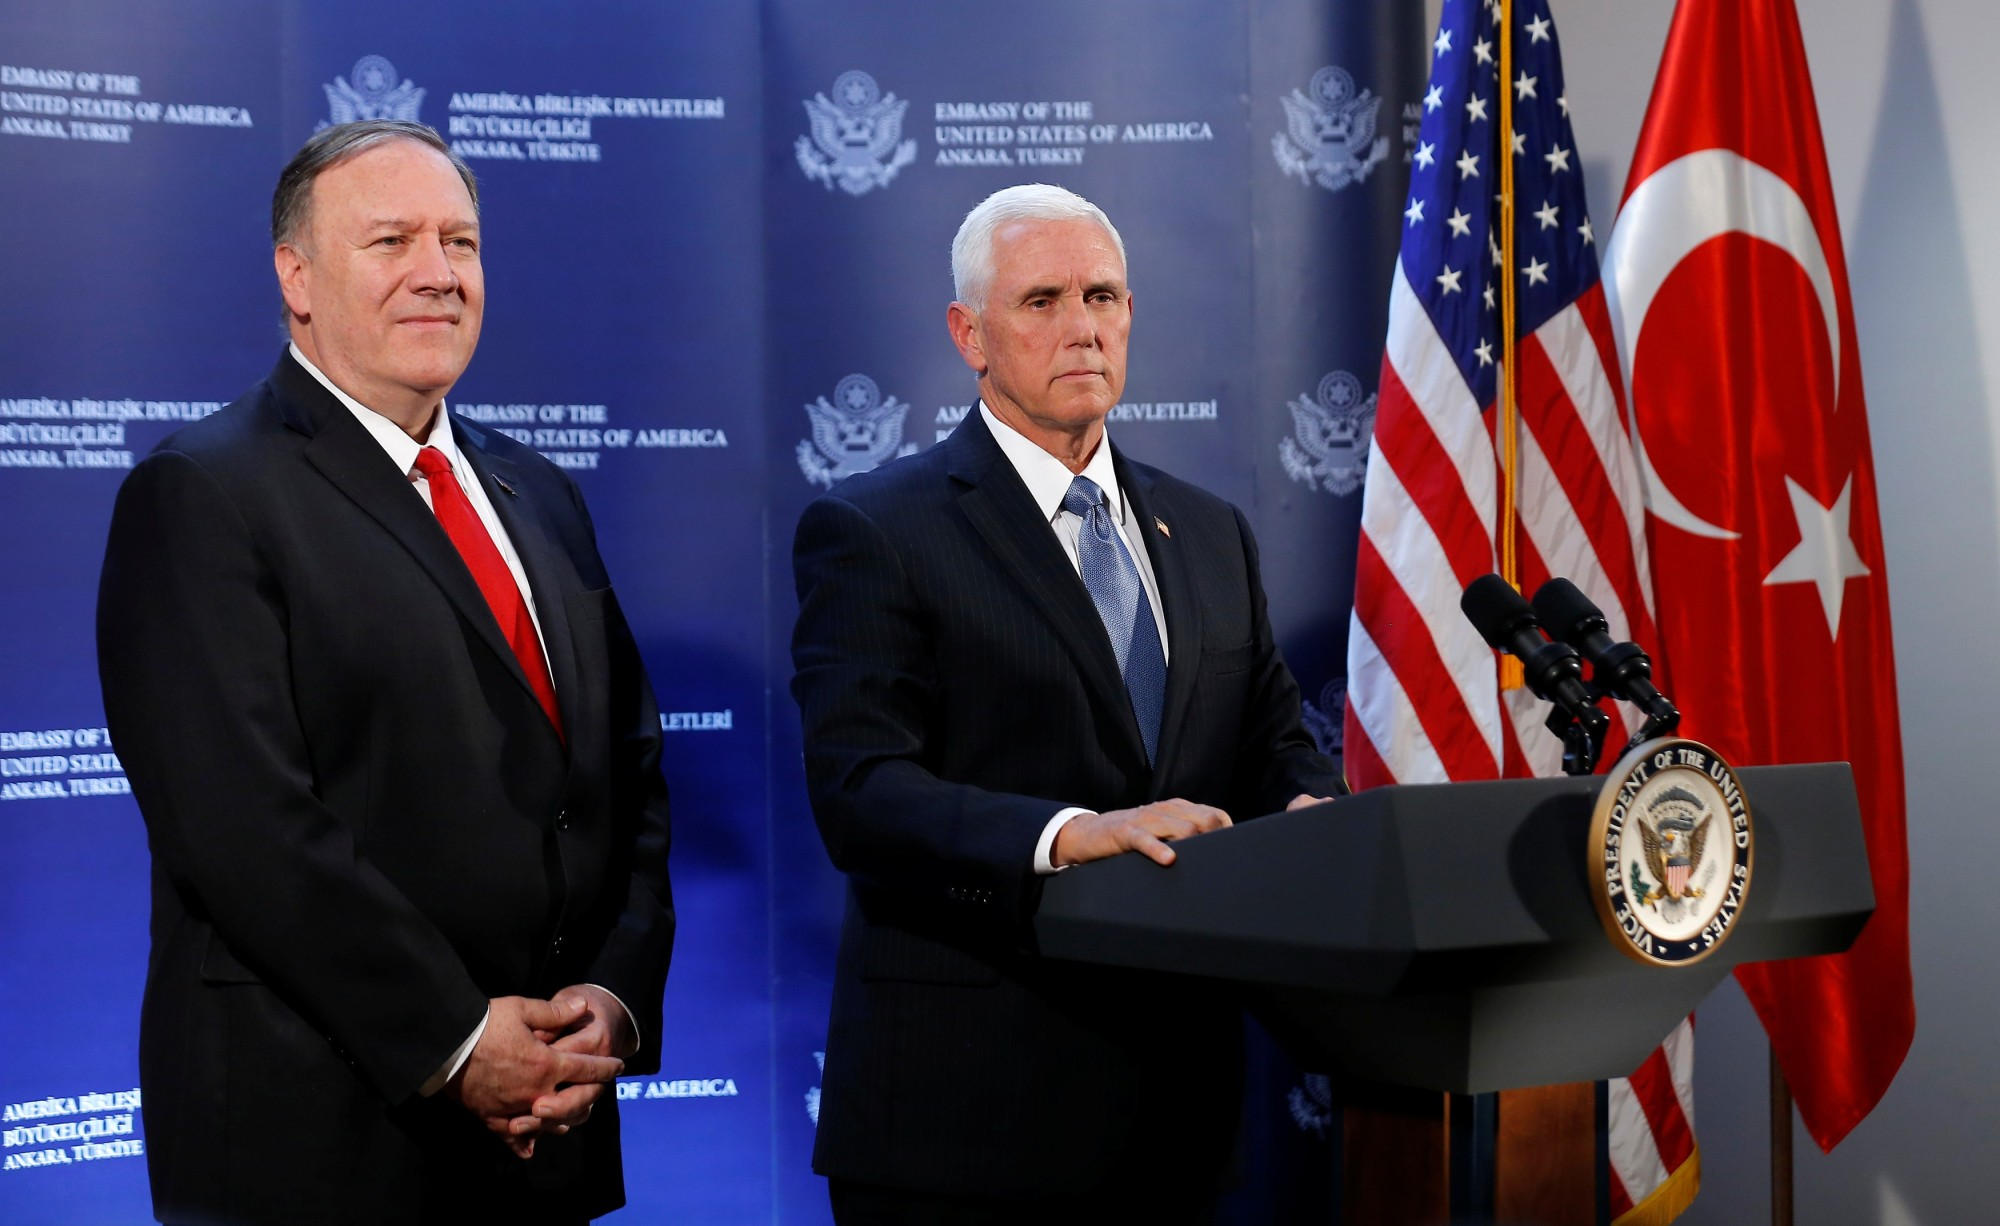 U.S. Vice President Mike Pence and U.S. Secretary of State Mike Pompeo attend a news conference at the U.S. Embassy in Ankara Thursday.   REUTERS